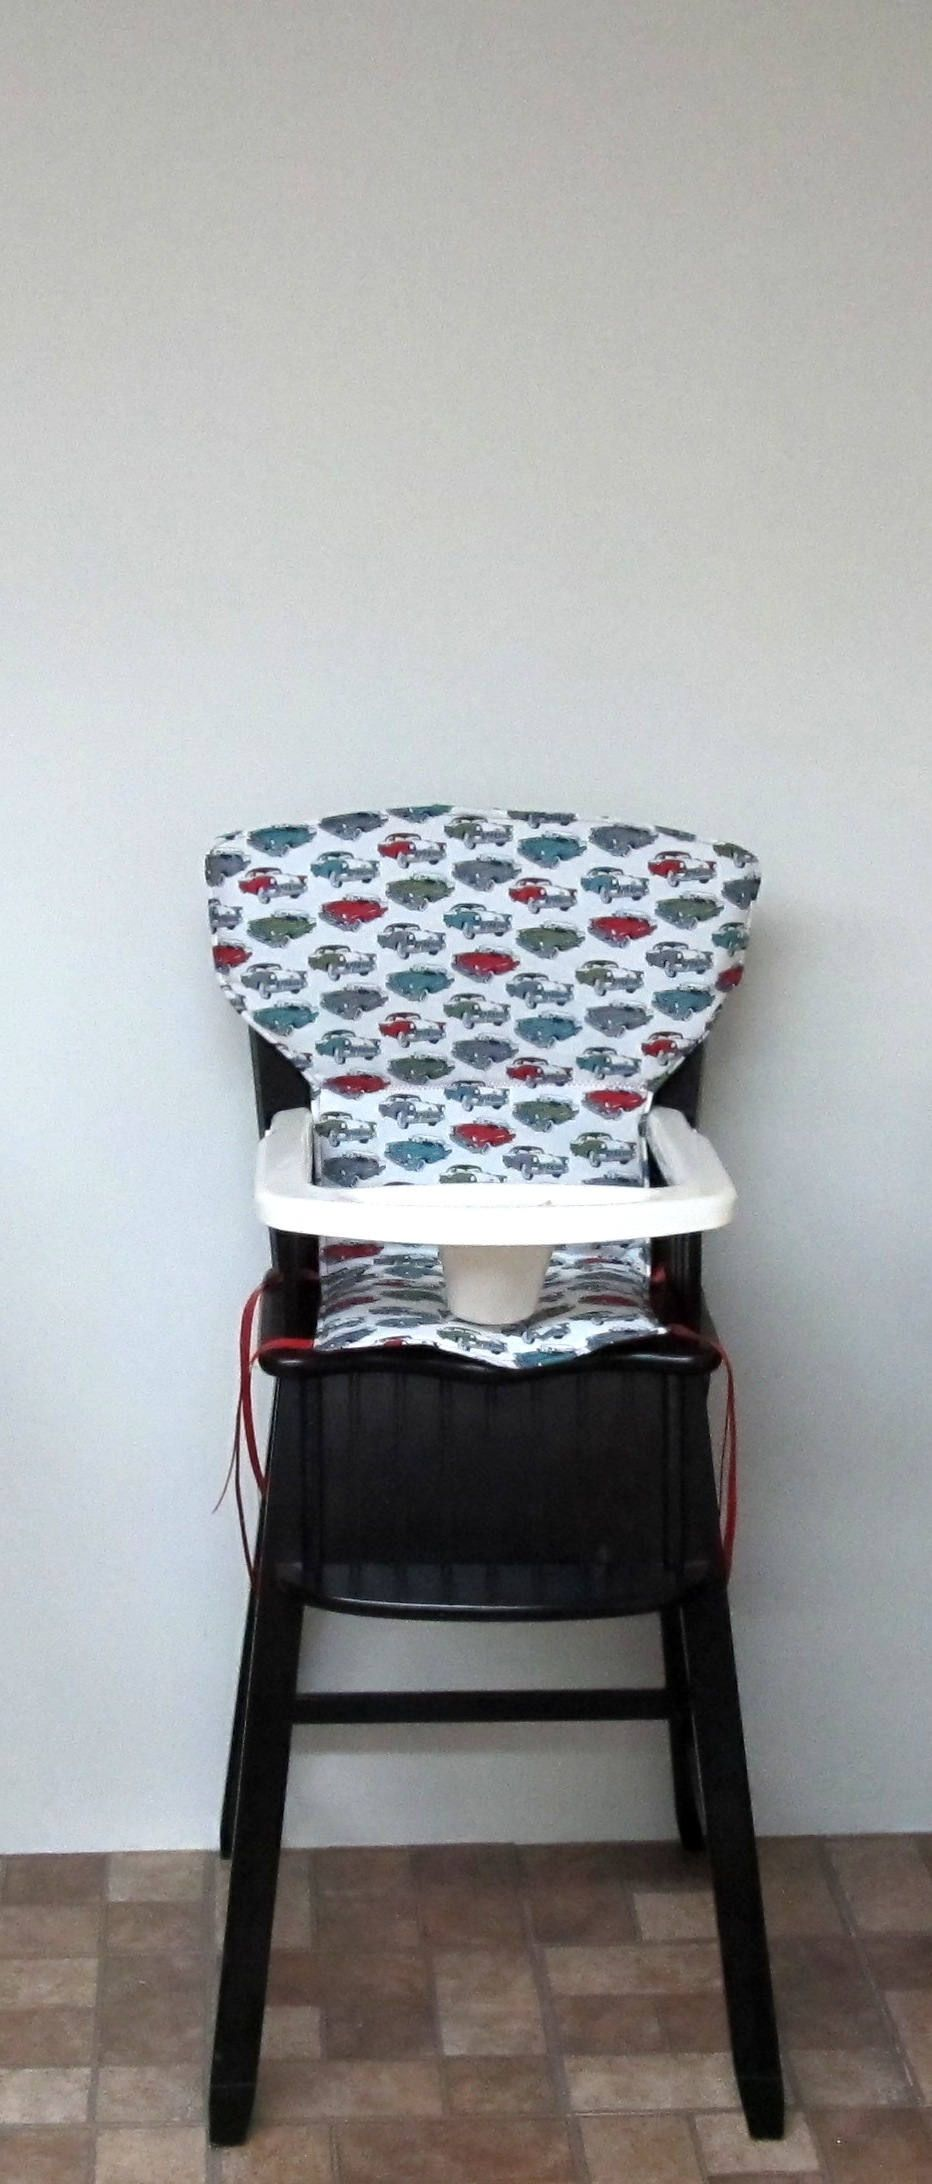 Eddie Bauer wood high chair cover NEWPORT STYLE baby